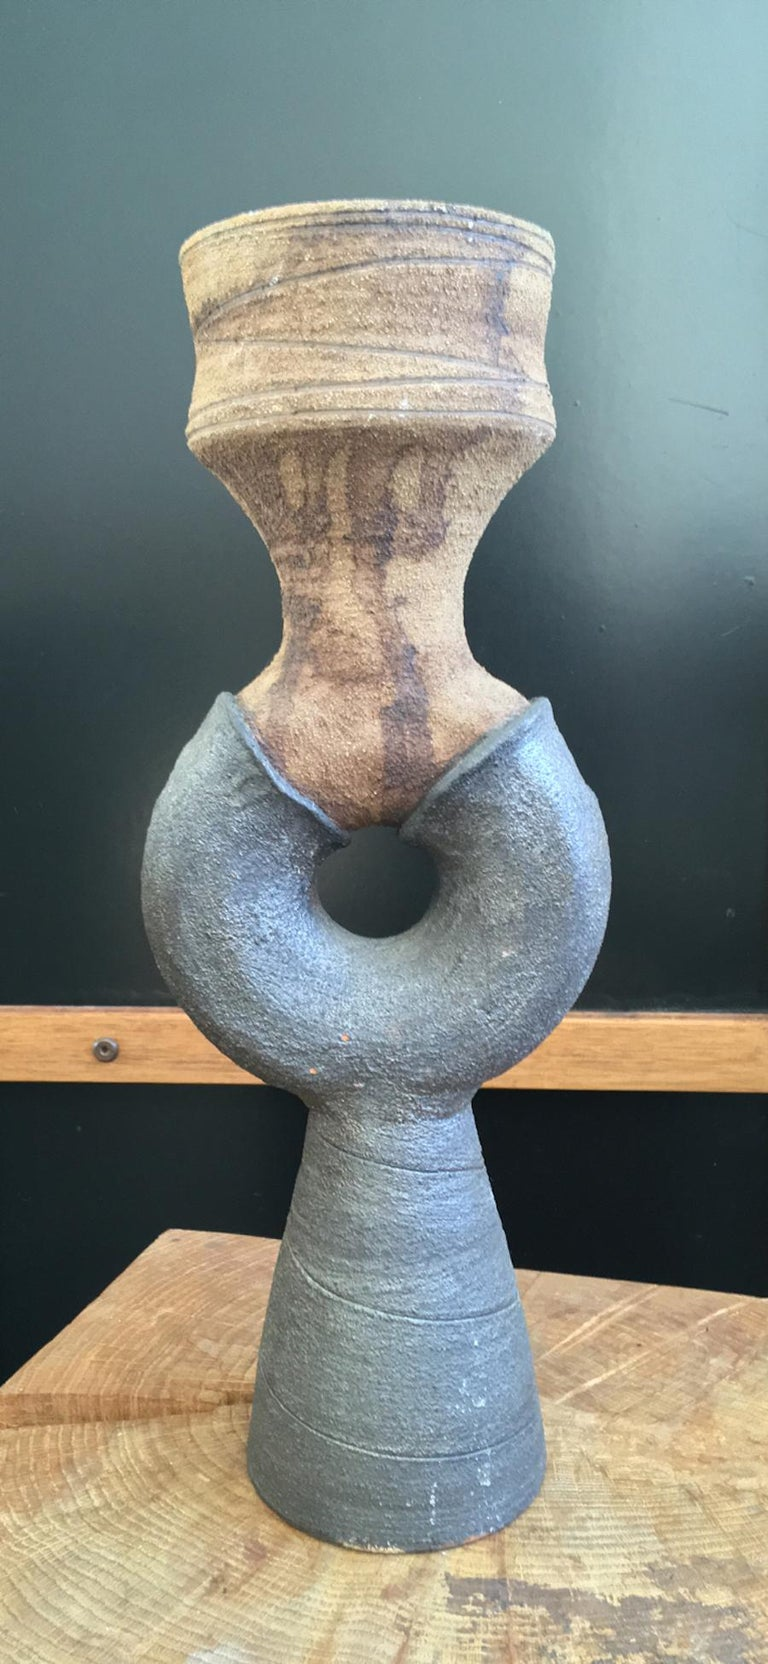 20th Century Mid-Century Modern Studio Ceramic Sculpture or Vessel by Clive Brooker, England For Sale